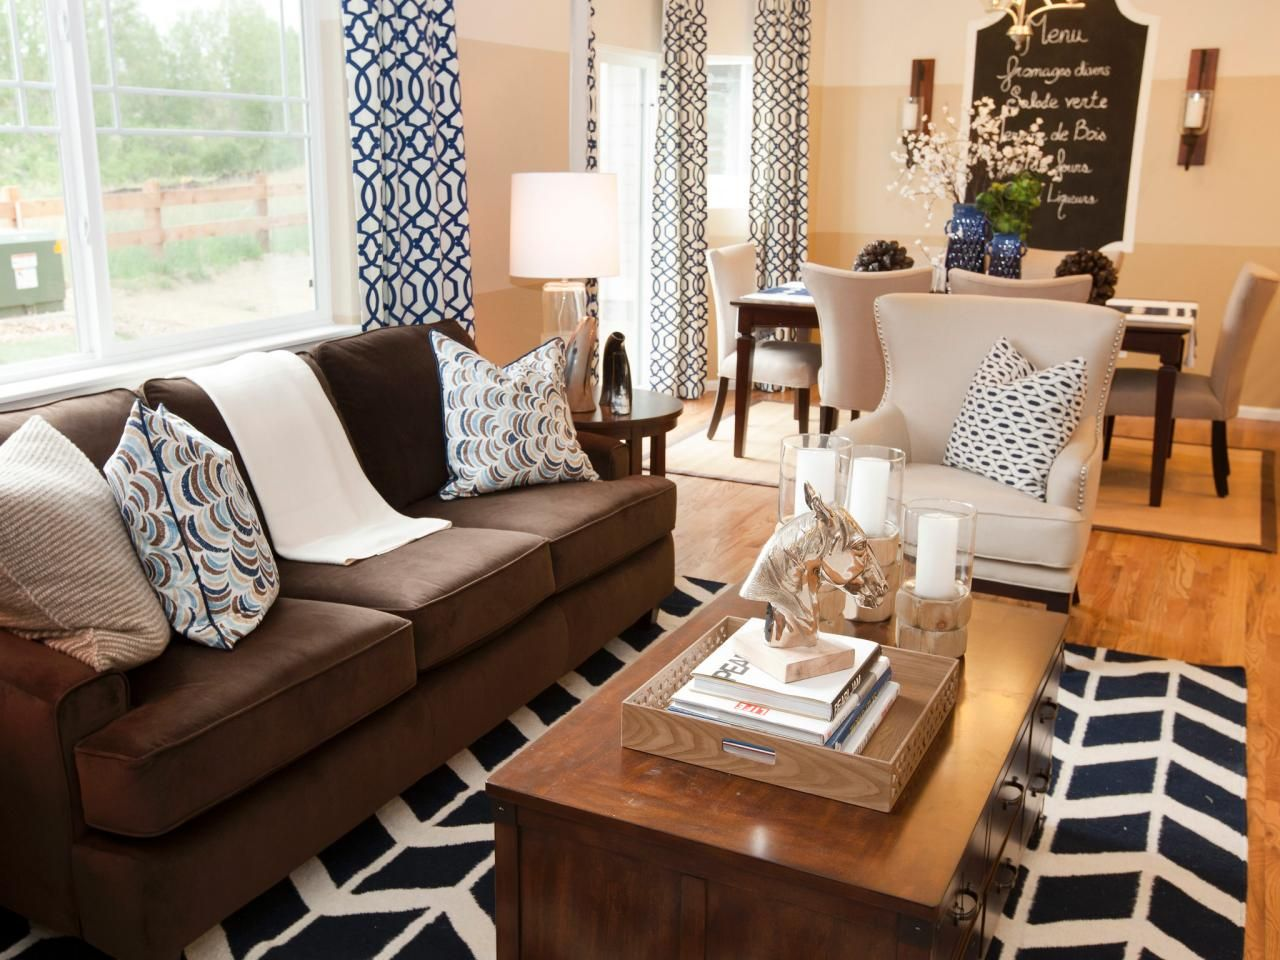 Bold Graphic Black And White Patterned Curtains Pillows And A Rug Fill This White Living Room